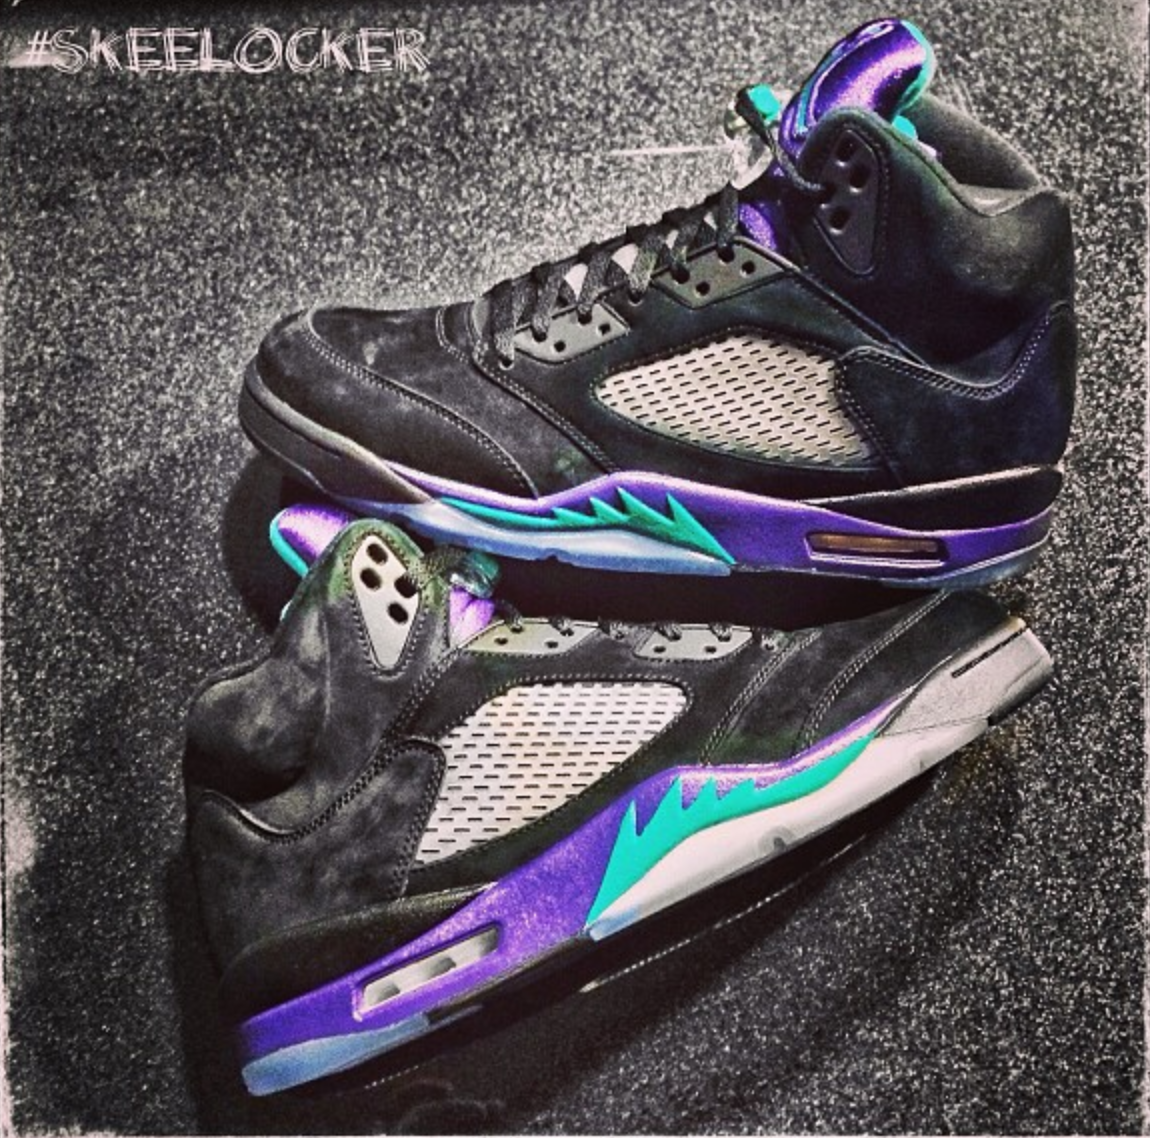 SkeeLocker 166 365  Air Jordan V Black Grape. More limited than a lot of  people knew (compared to other recent retros). Did u get yours  cacb6b6ea5